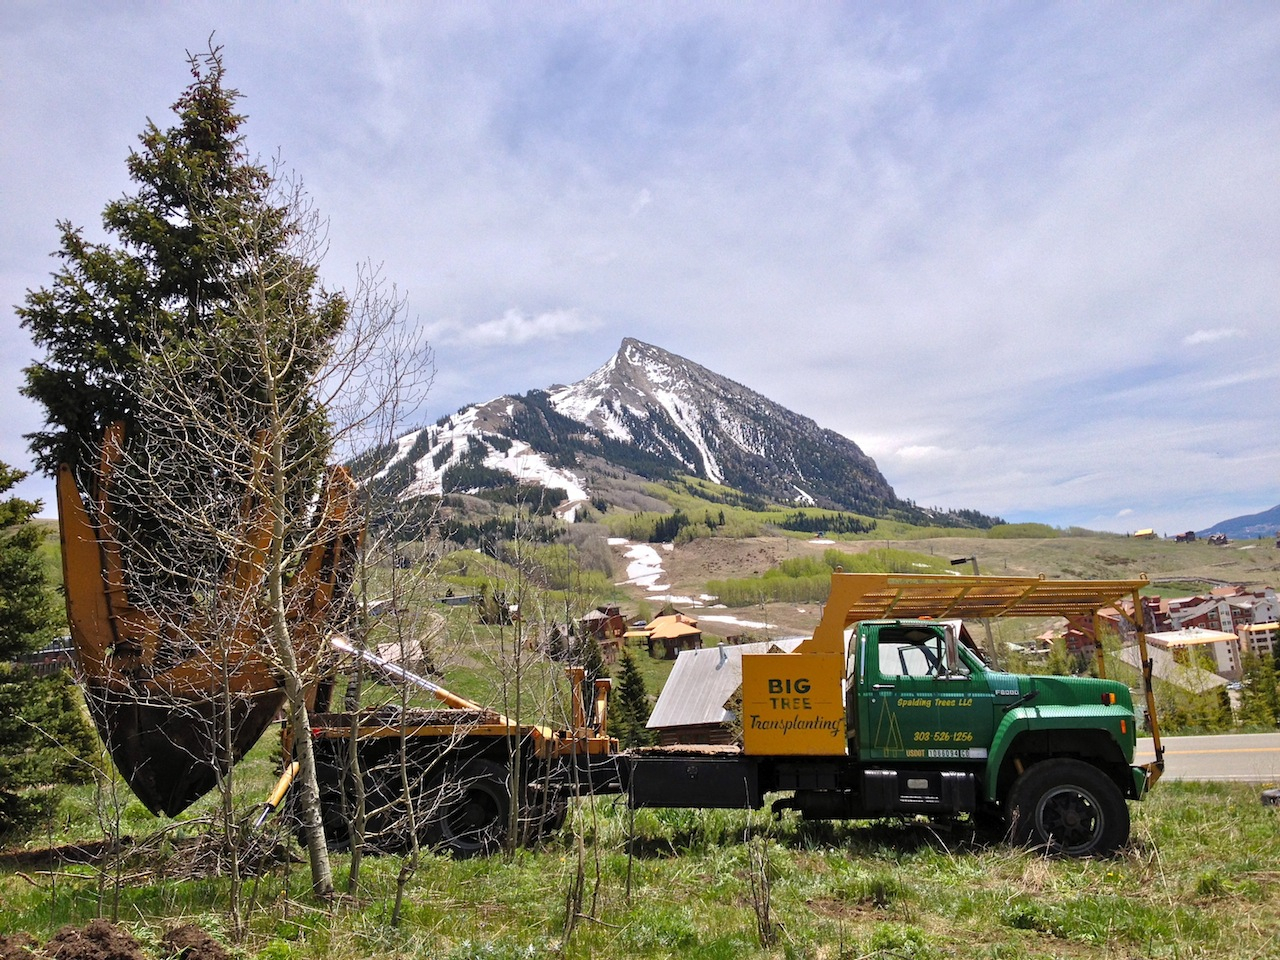 Spalding Trees LLC - A large tree moving company in Denver, CO